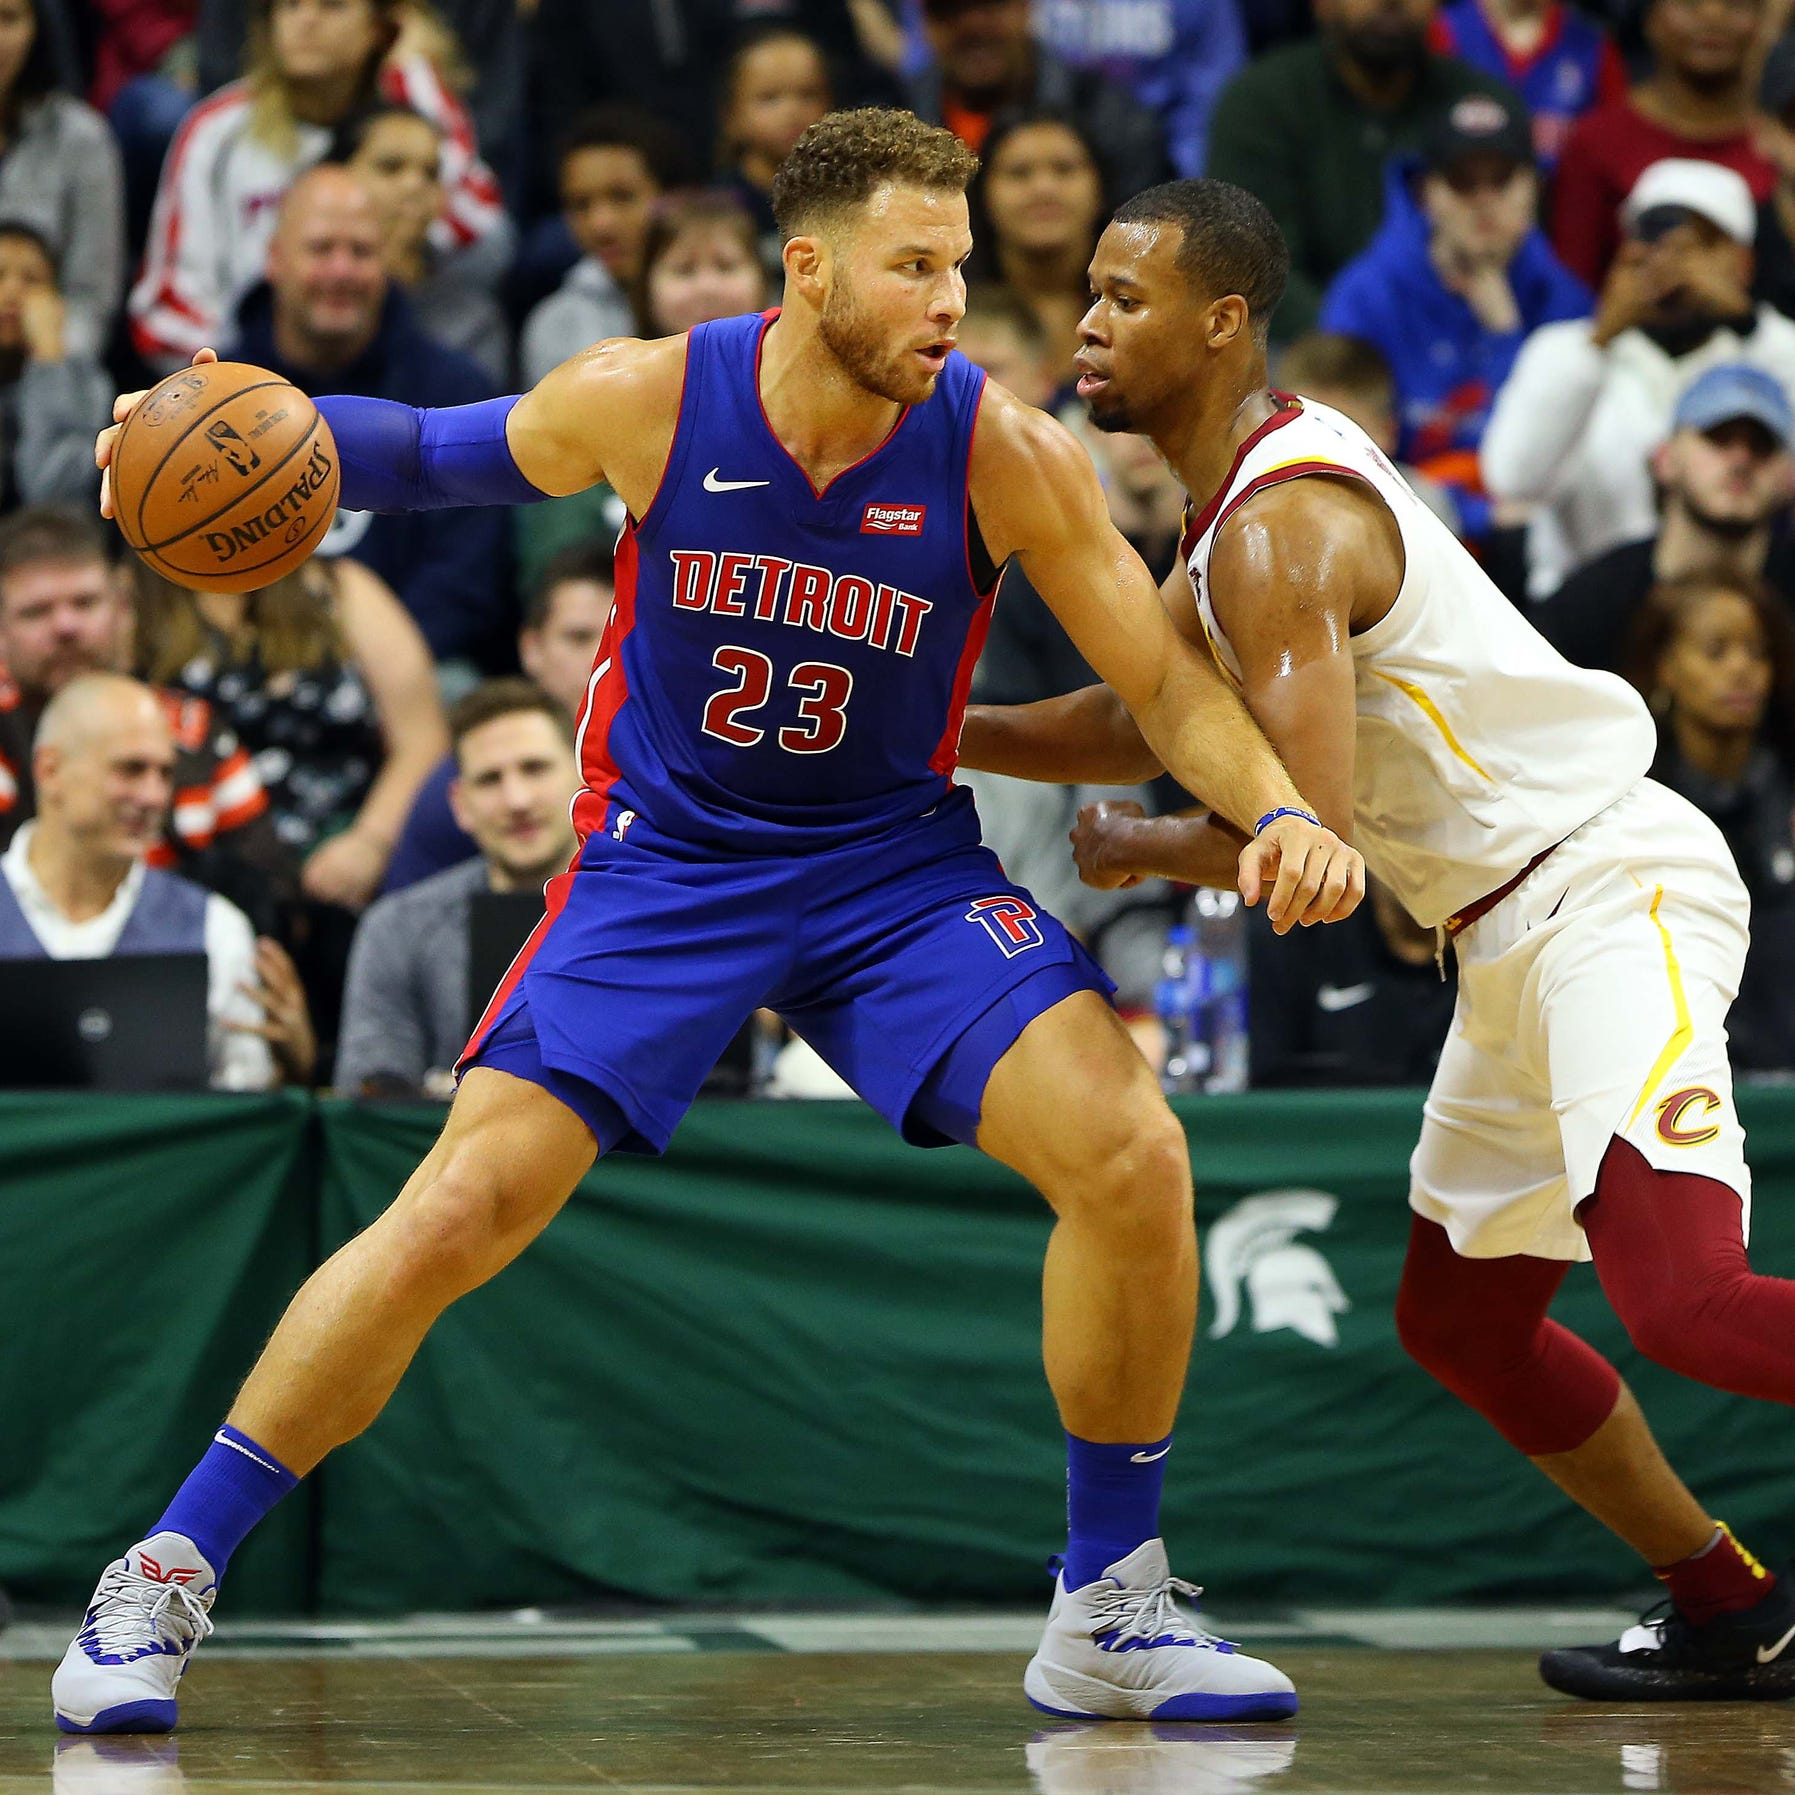 Blake Griffin 'is back' as Detroit Pistons hit Cavs with barrage of 3s